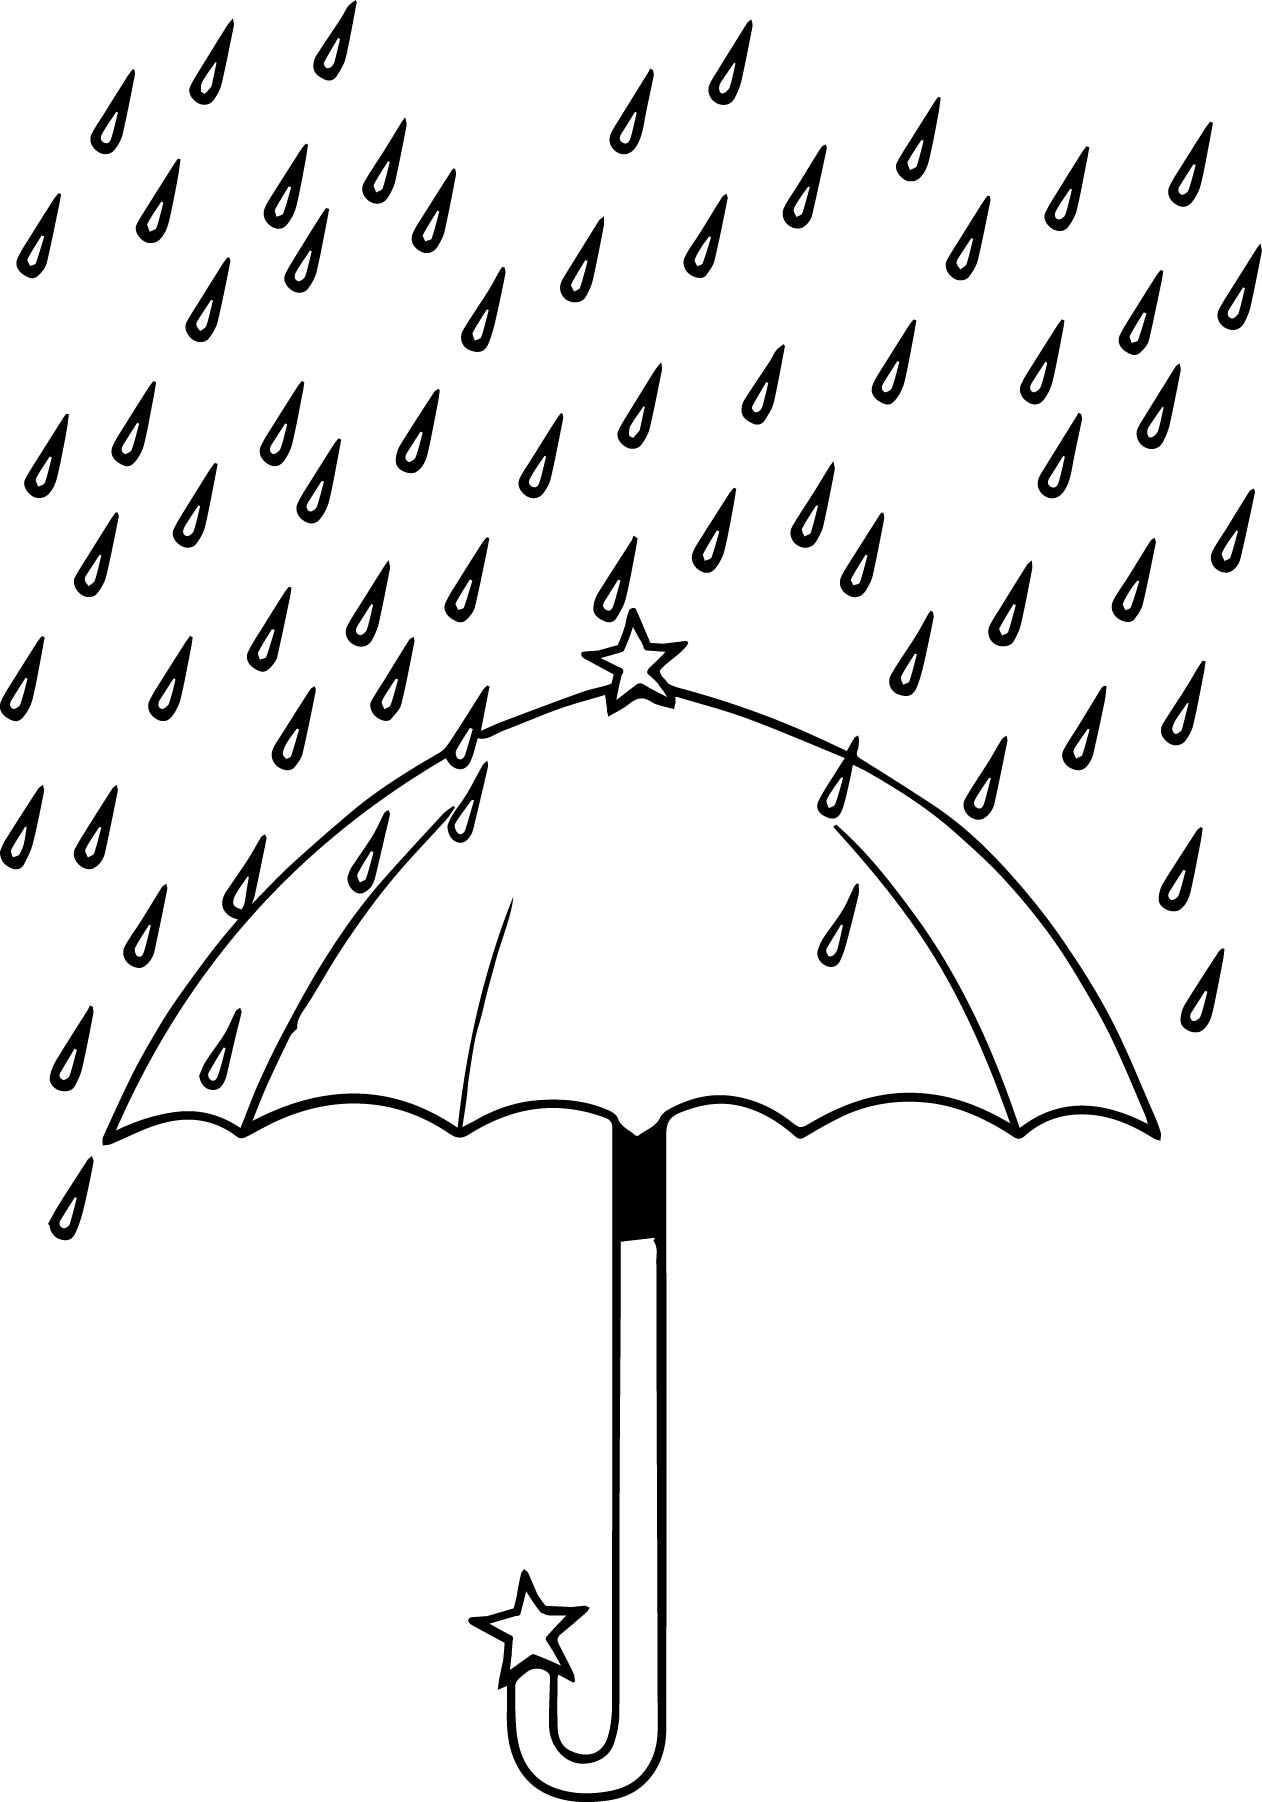 April Umbrella Rain Coloring Page